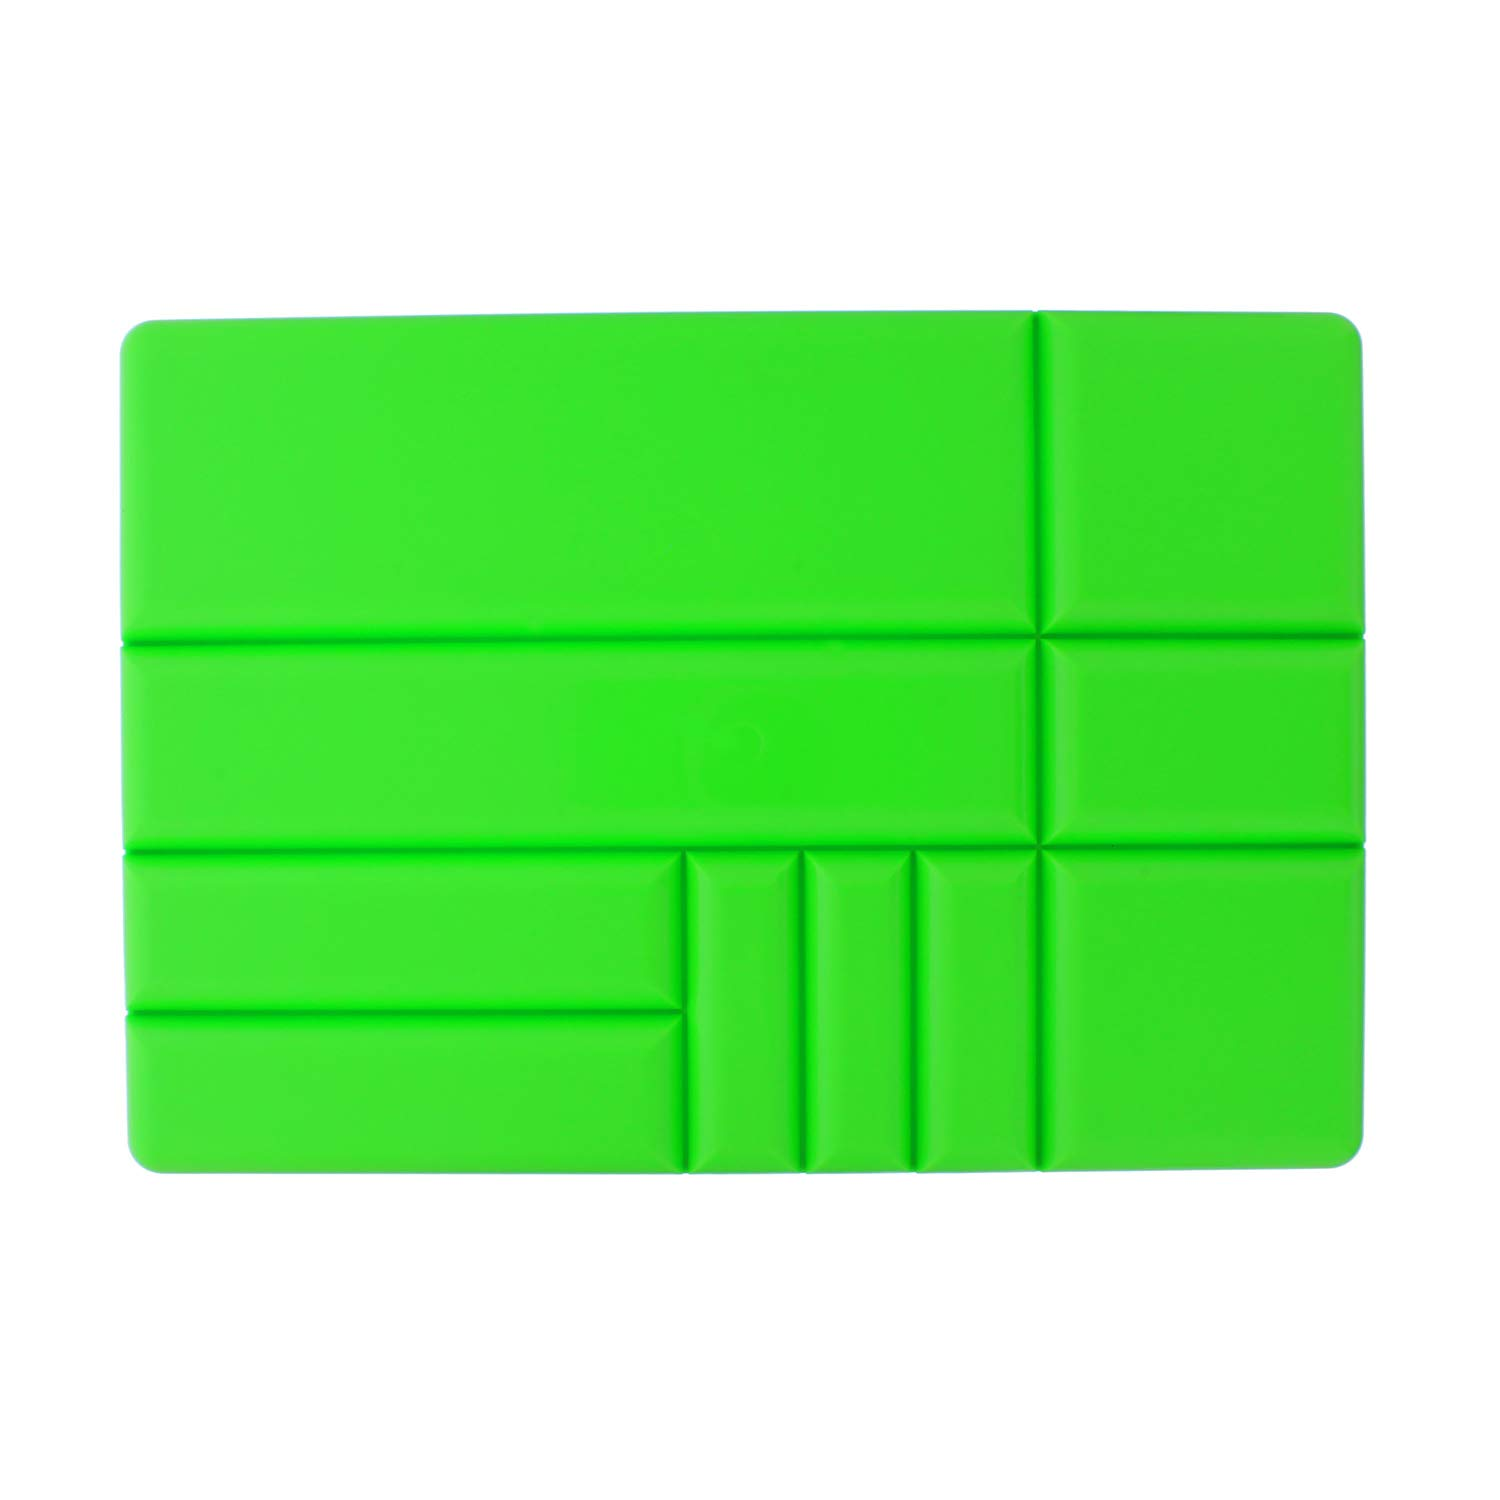 ABN | Toolbox Drawer Organizer Tool Organizer Tool Tray - Tool Drawer Organizer Sorting Tray, 16x11x1.5'' Inch in Green by ABN (Image #5)